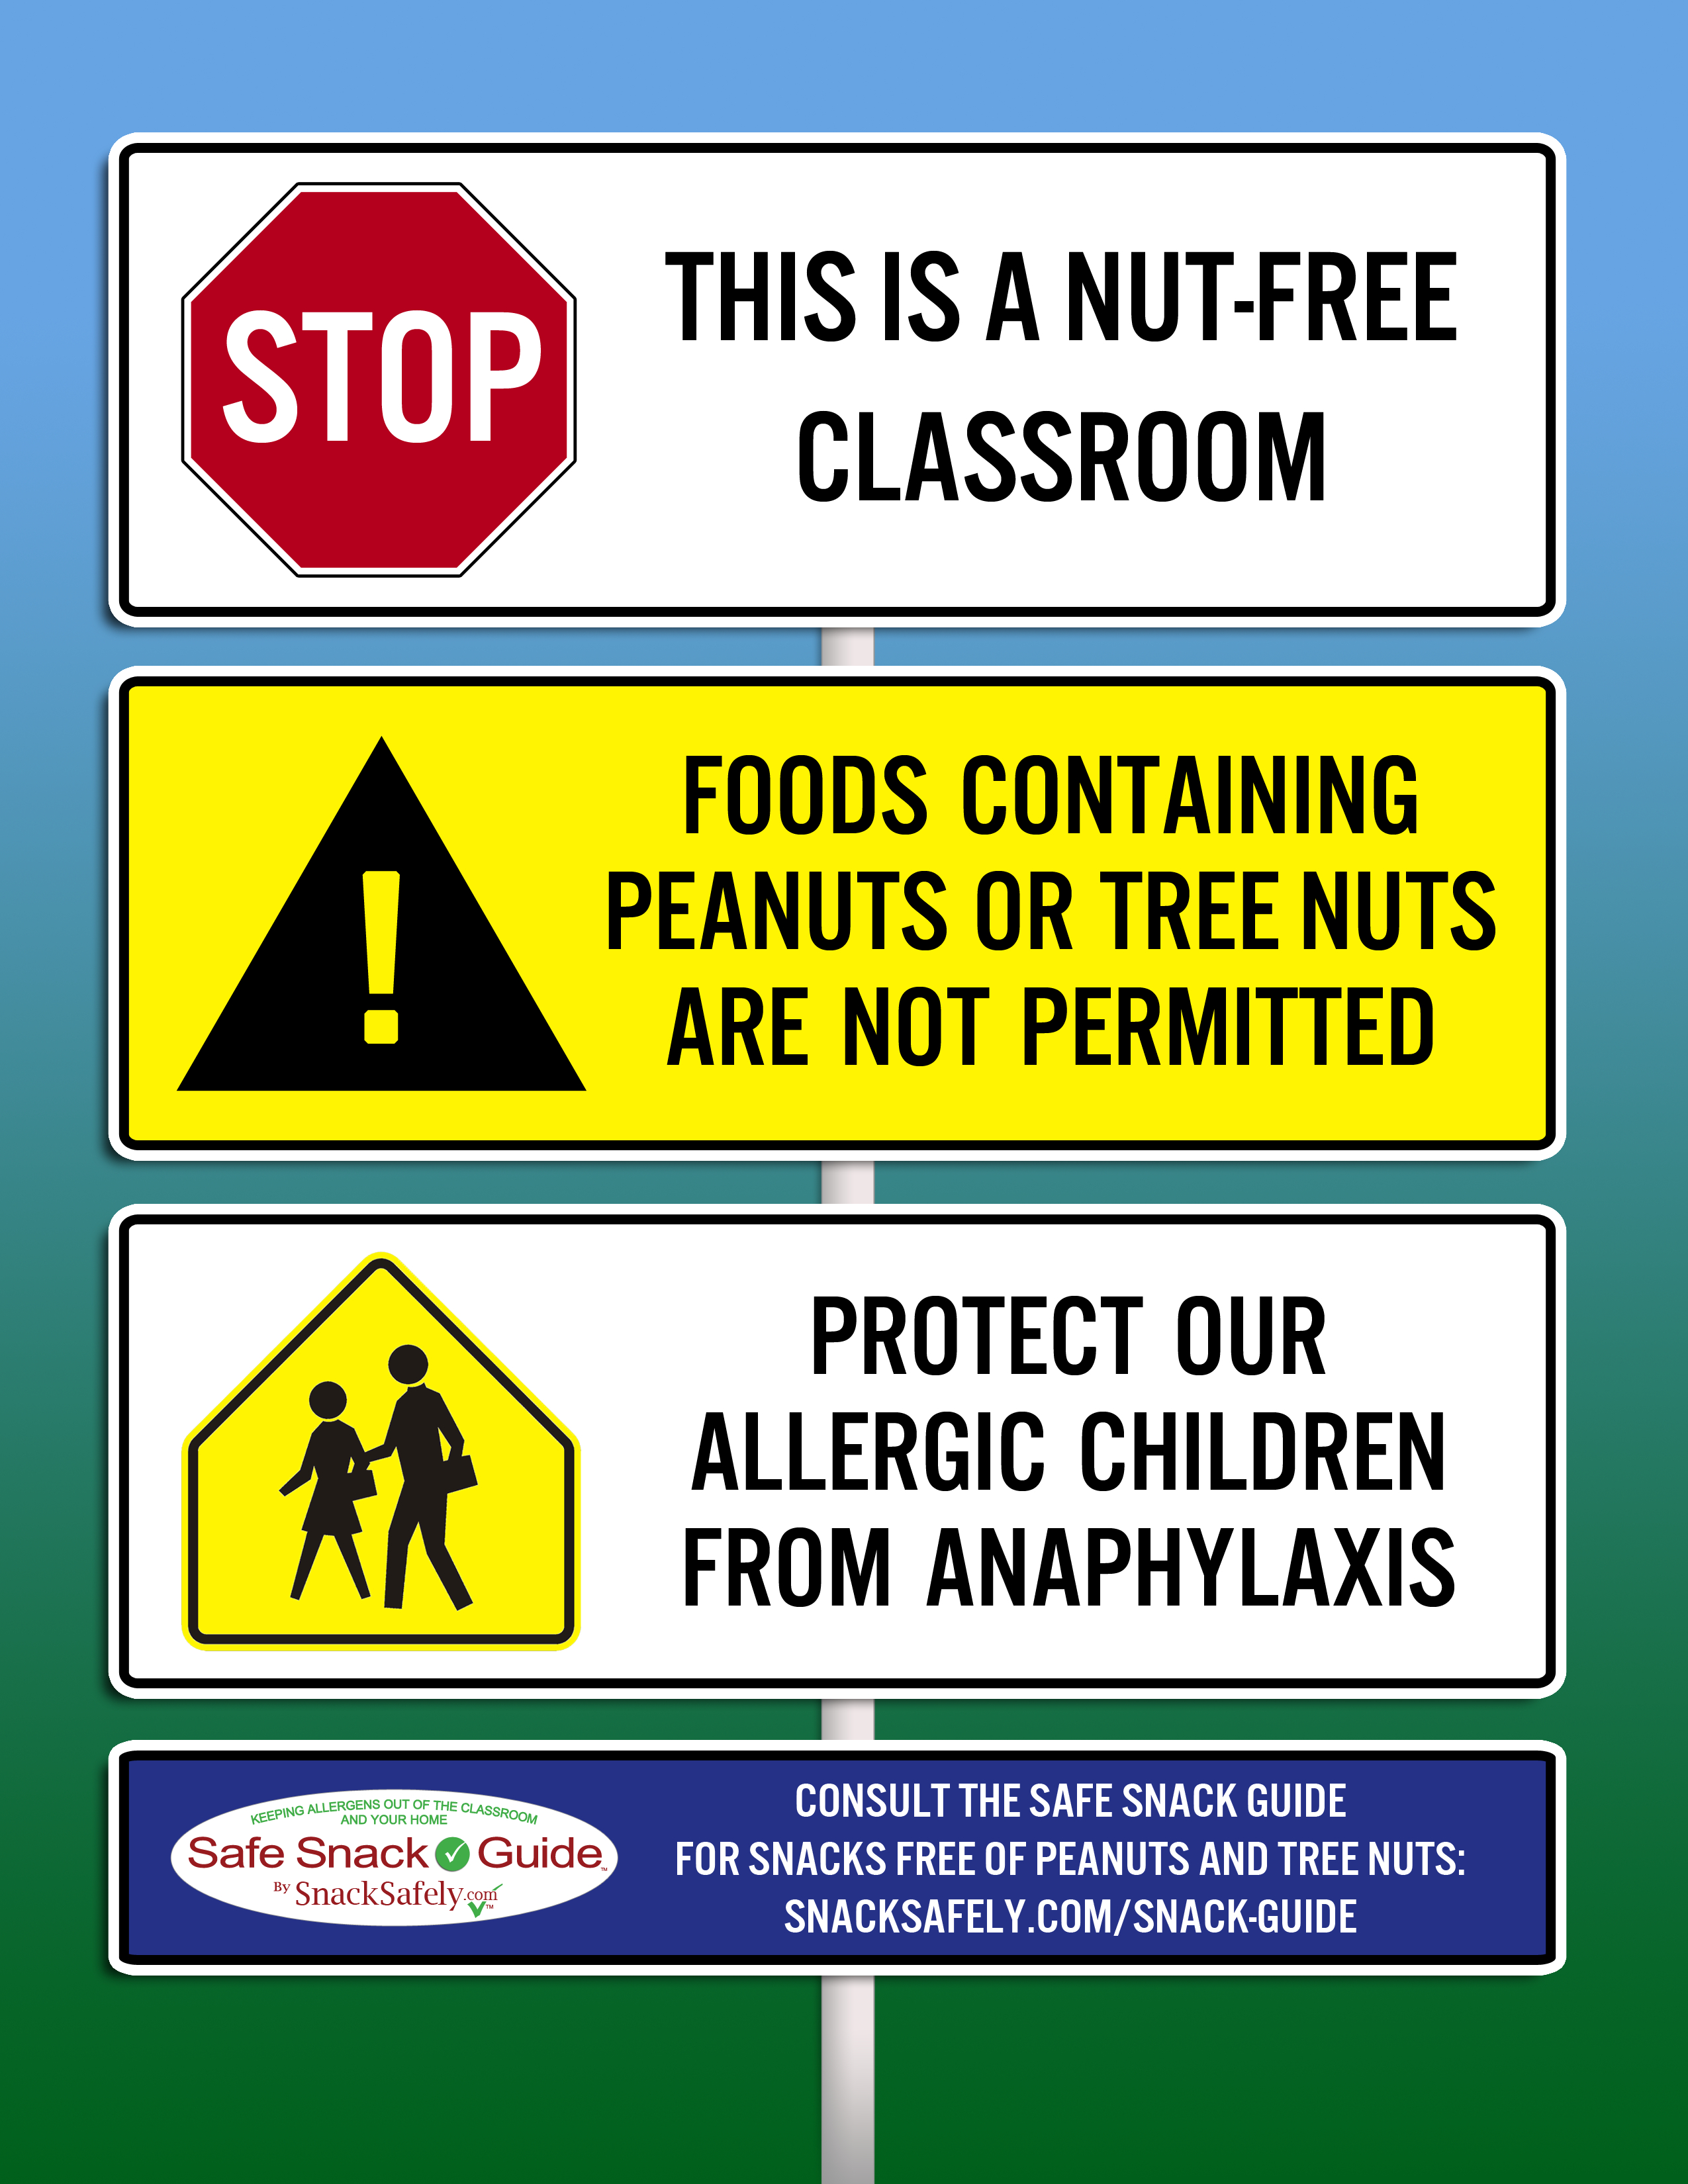 Nut-Free Notice Graphics For Your School | Snacksafely Articles - Printable Peanut Free Classroom Signs